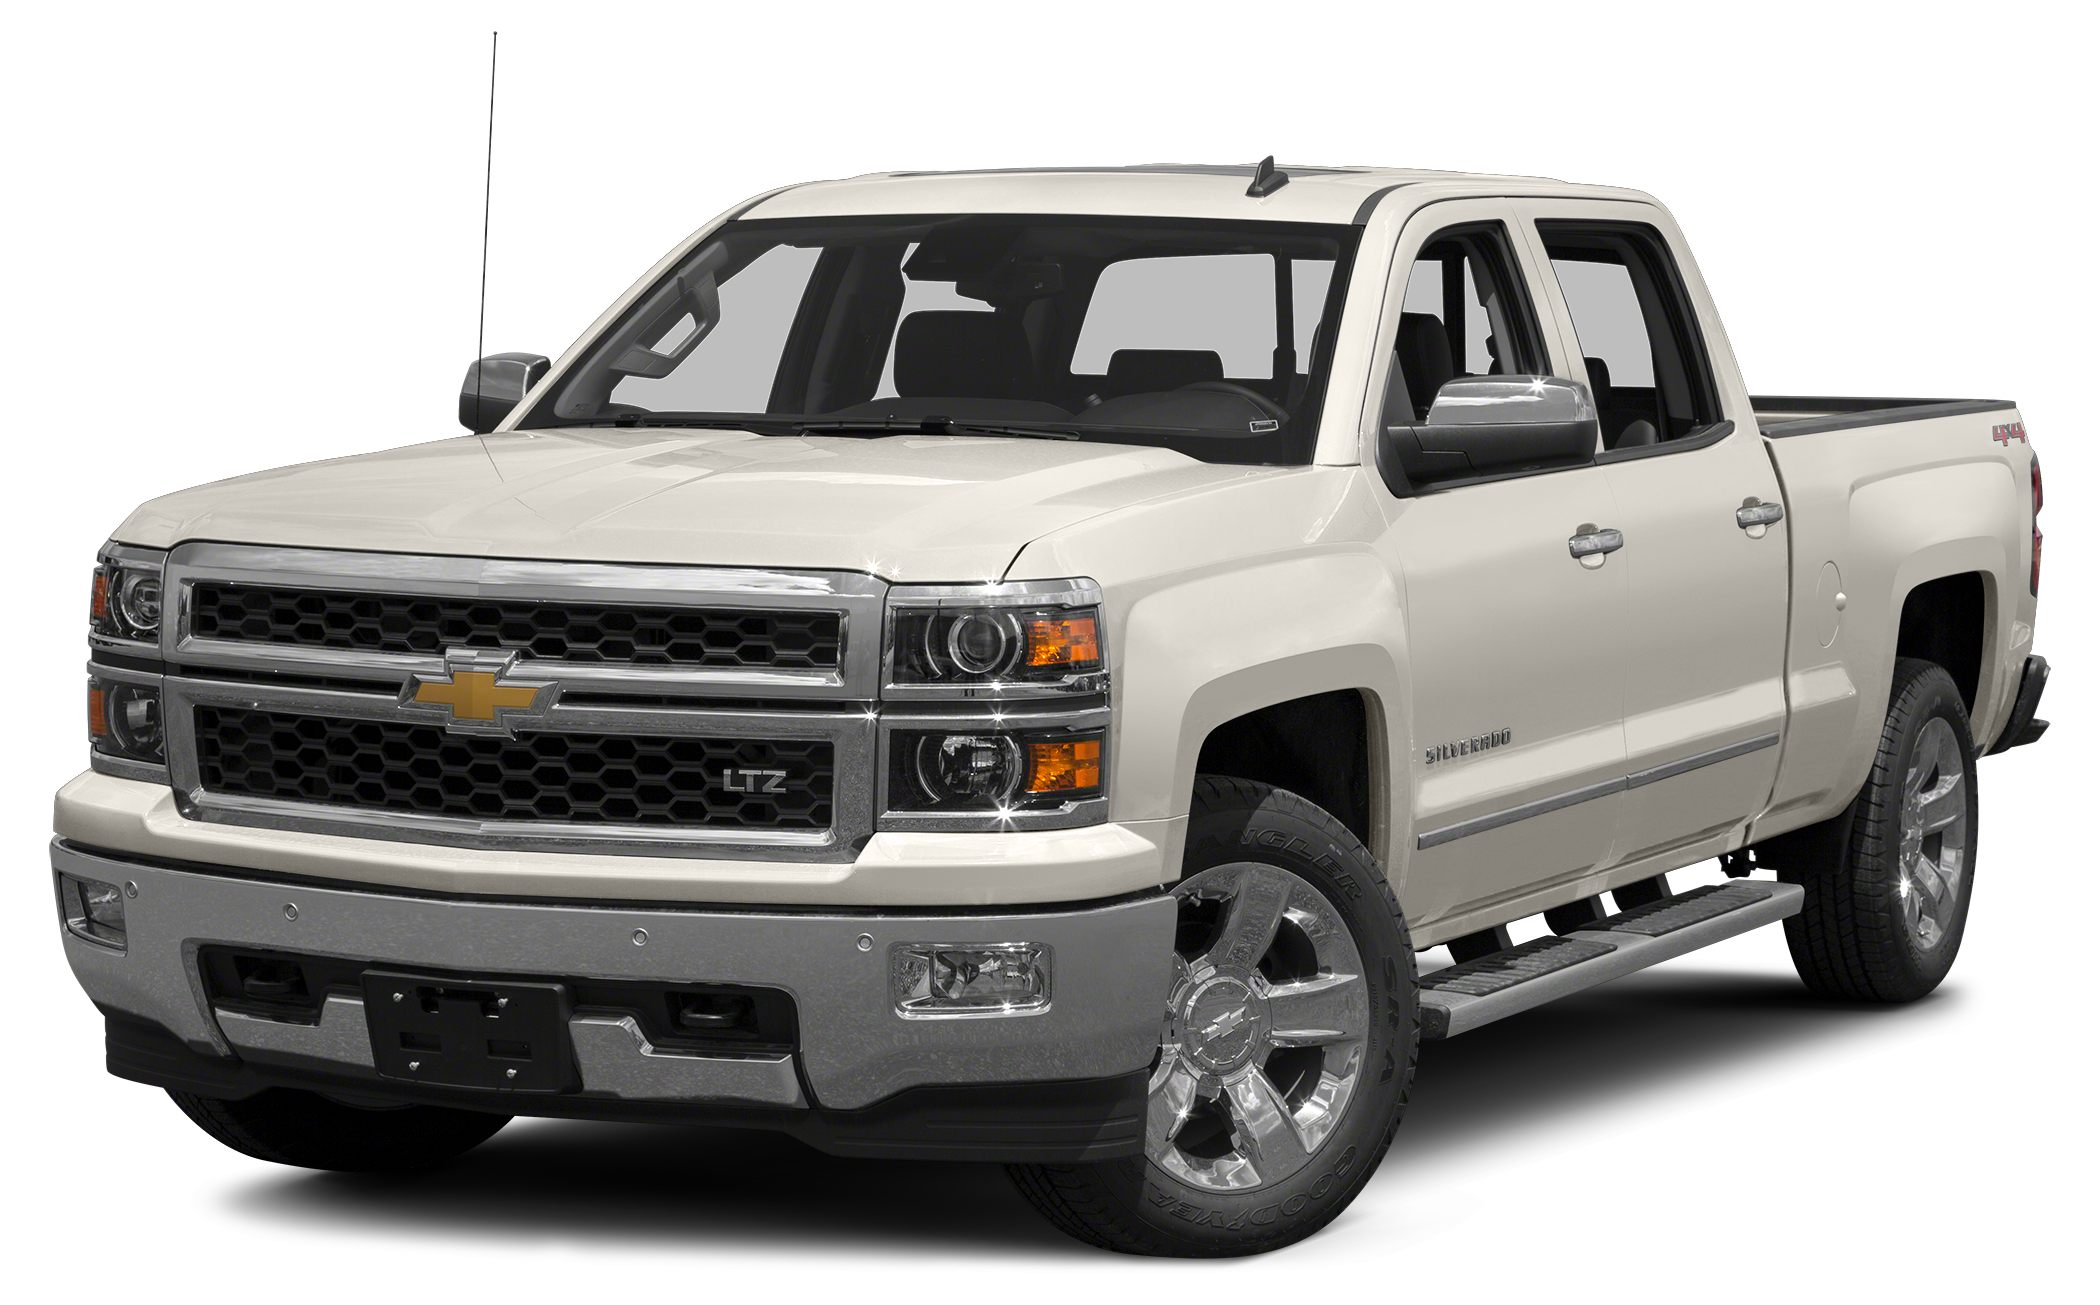 2015 Chevrolet Silverado 1500 1LT Road trips can be fun again with the anti-lock brakes and dual a